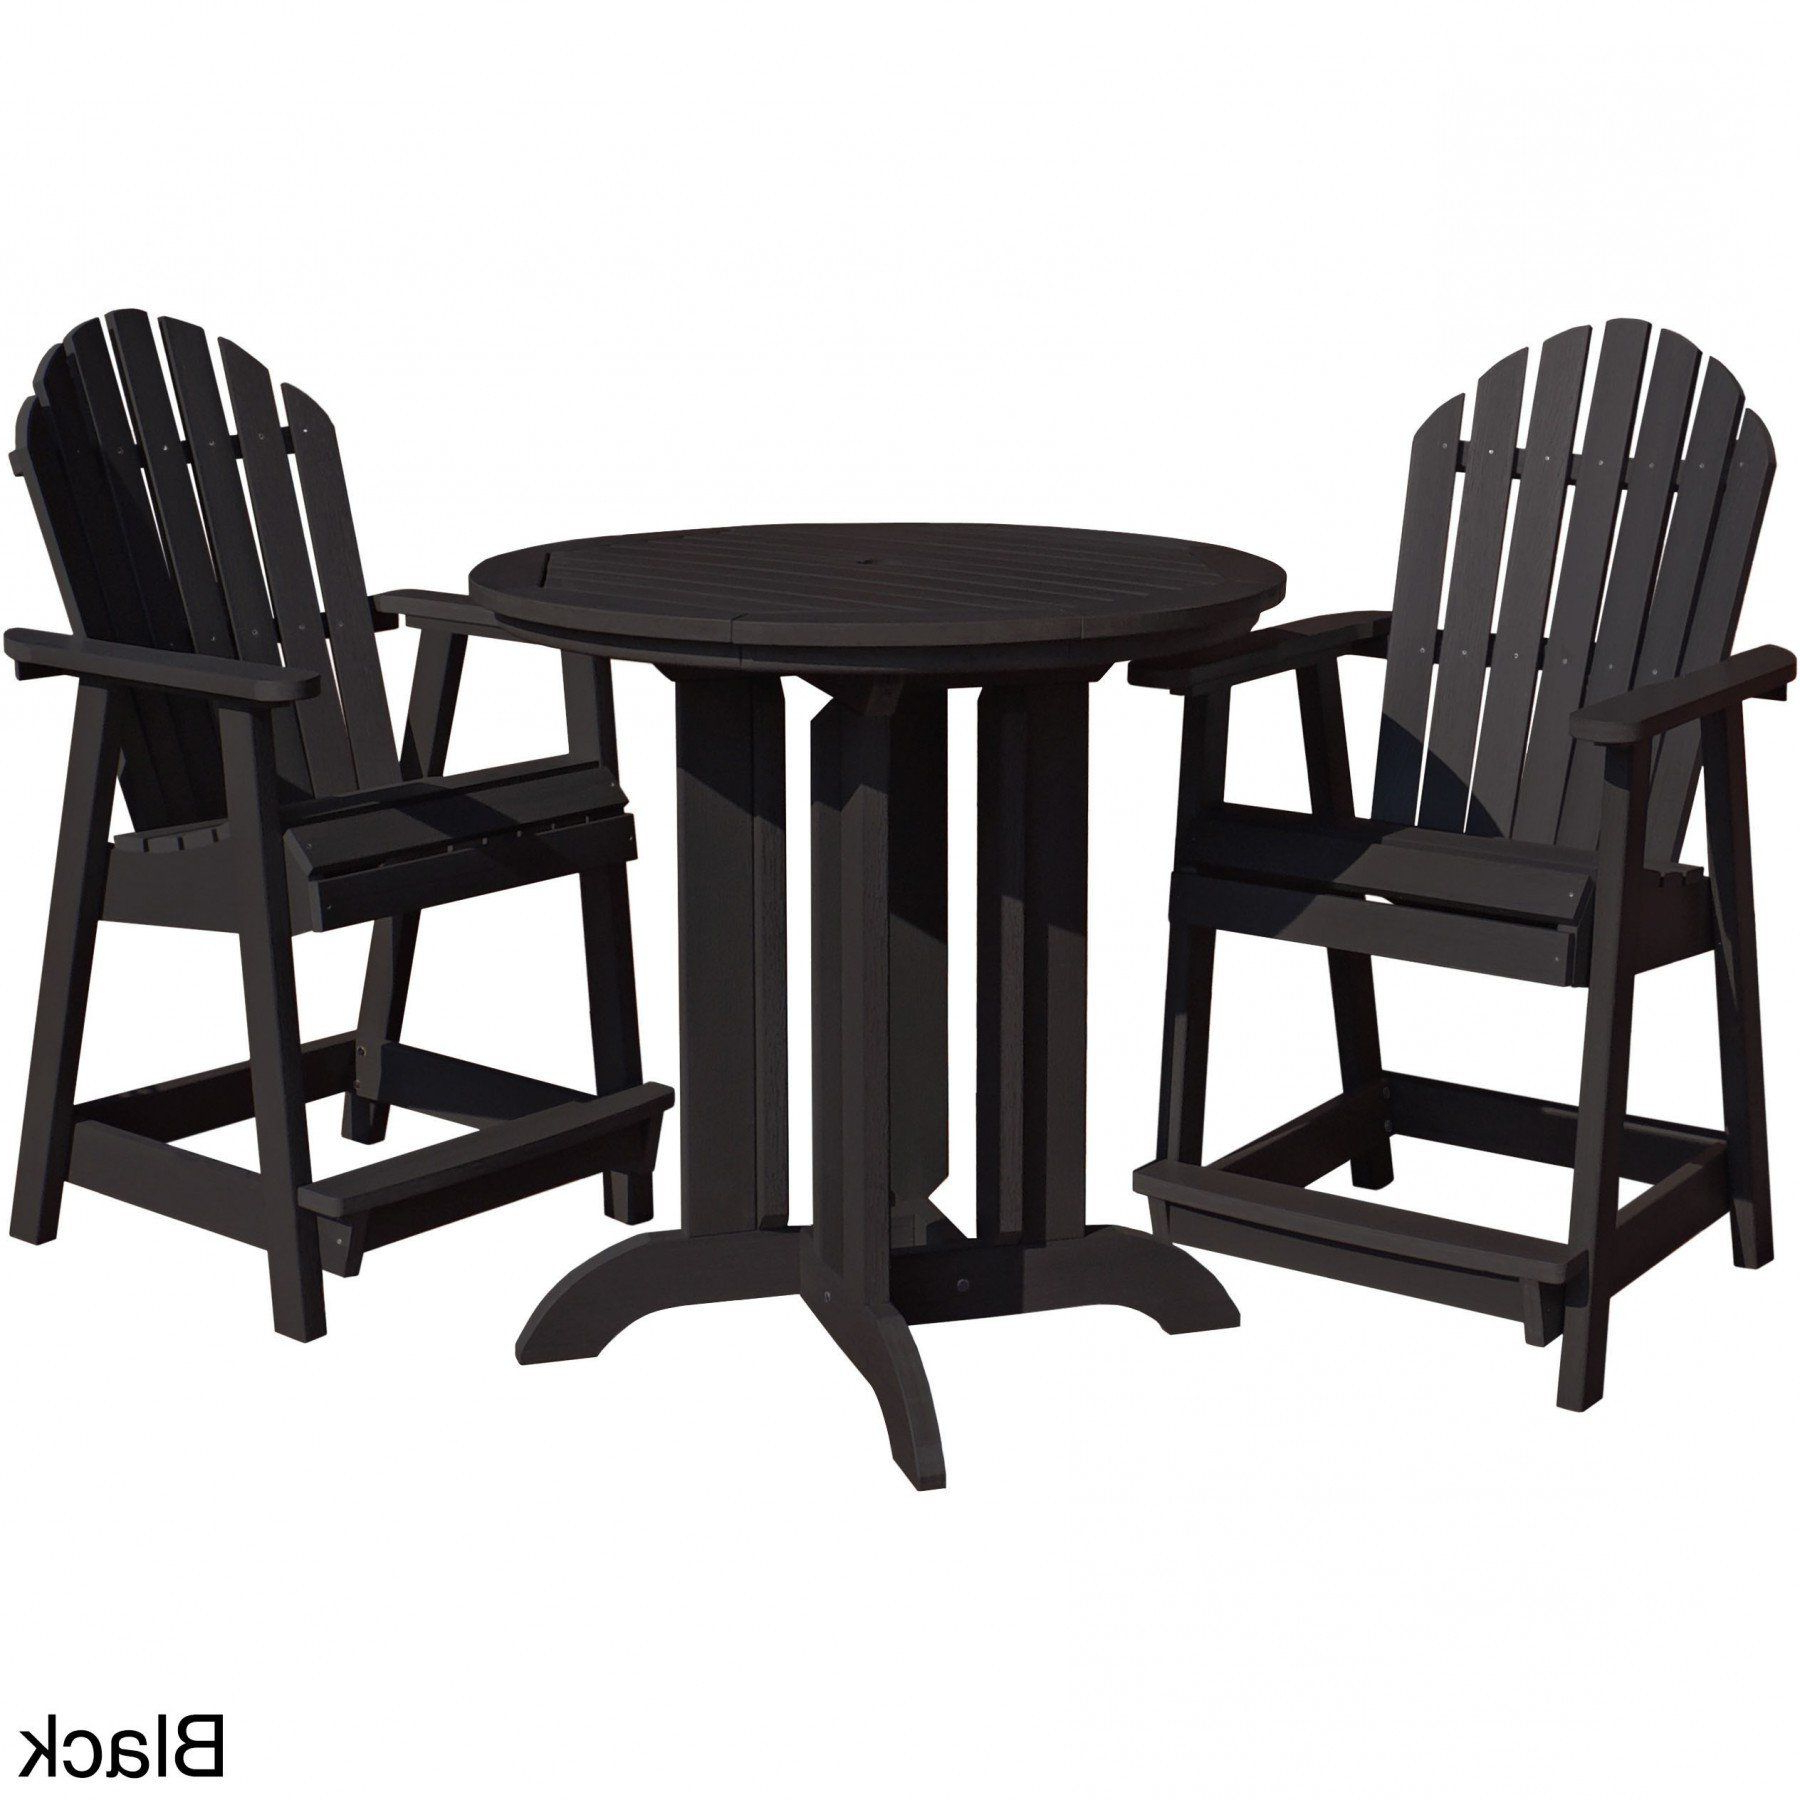 Highwood Usa Eco Friendly Hamilton 3 Piece Round Counter Dining Set For Popular Winsted 4 Piece Counter Height Dining Sets (View 23 of 25)